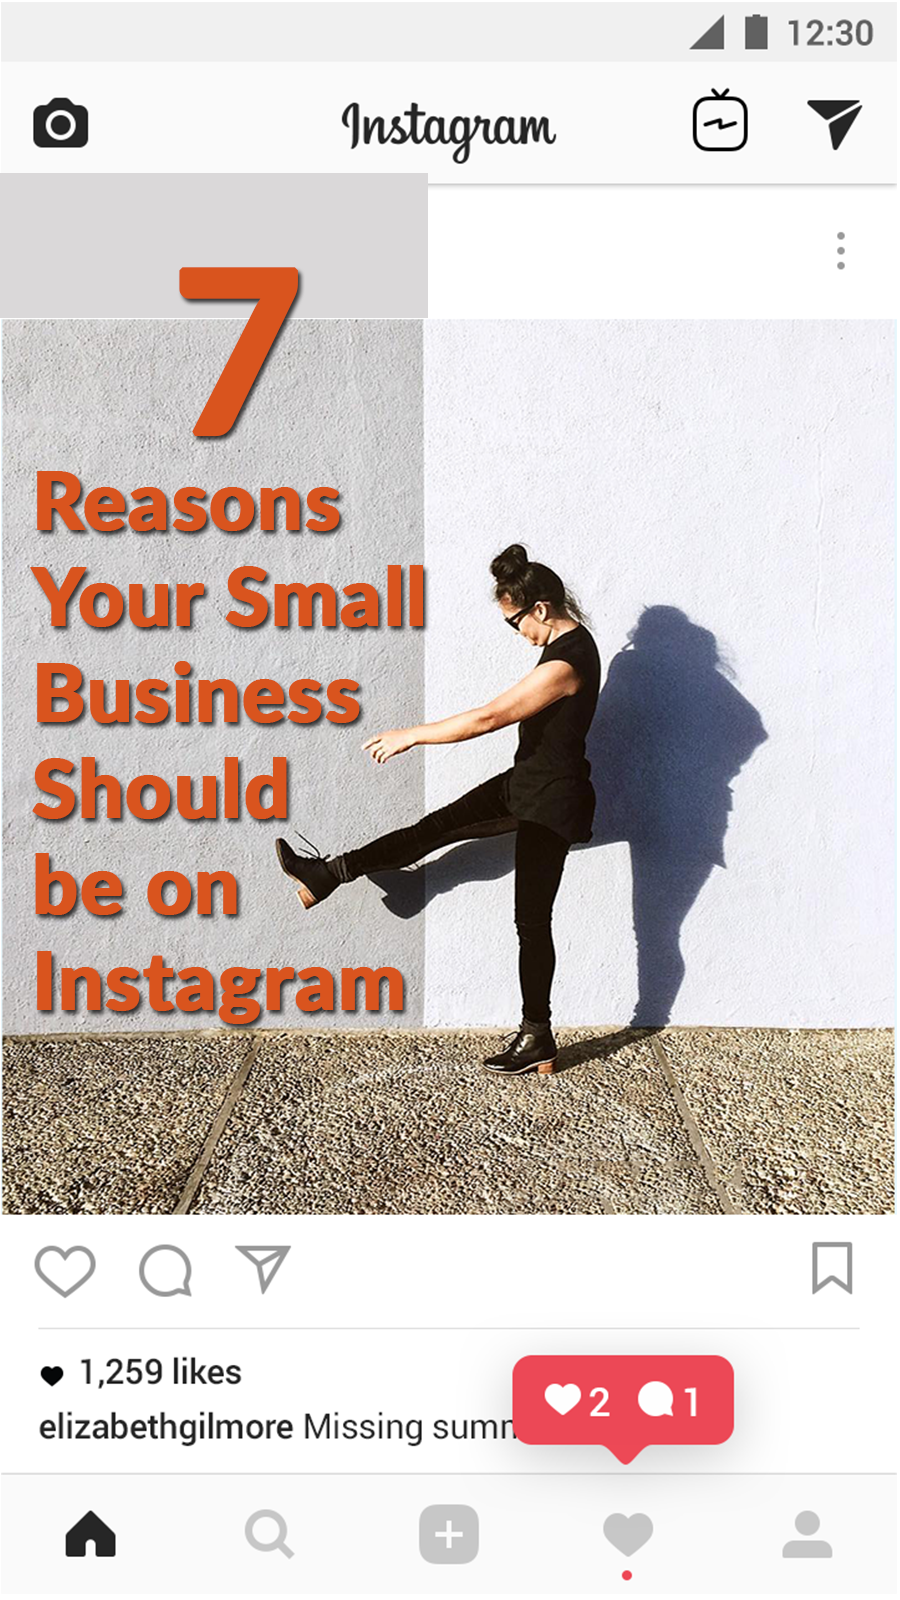 7 reasons your small business should be on Instagram